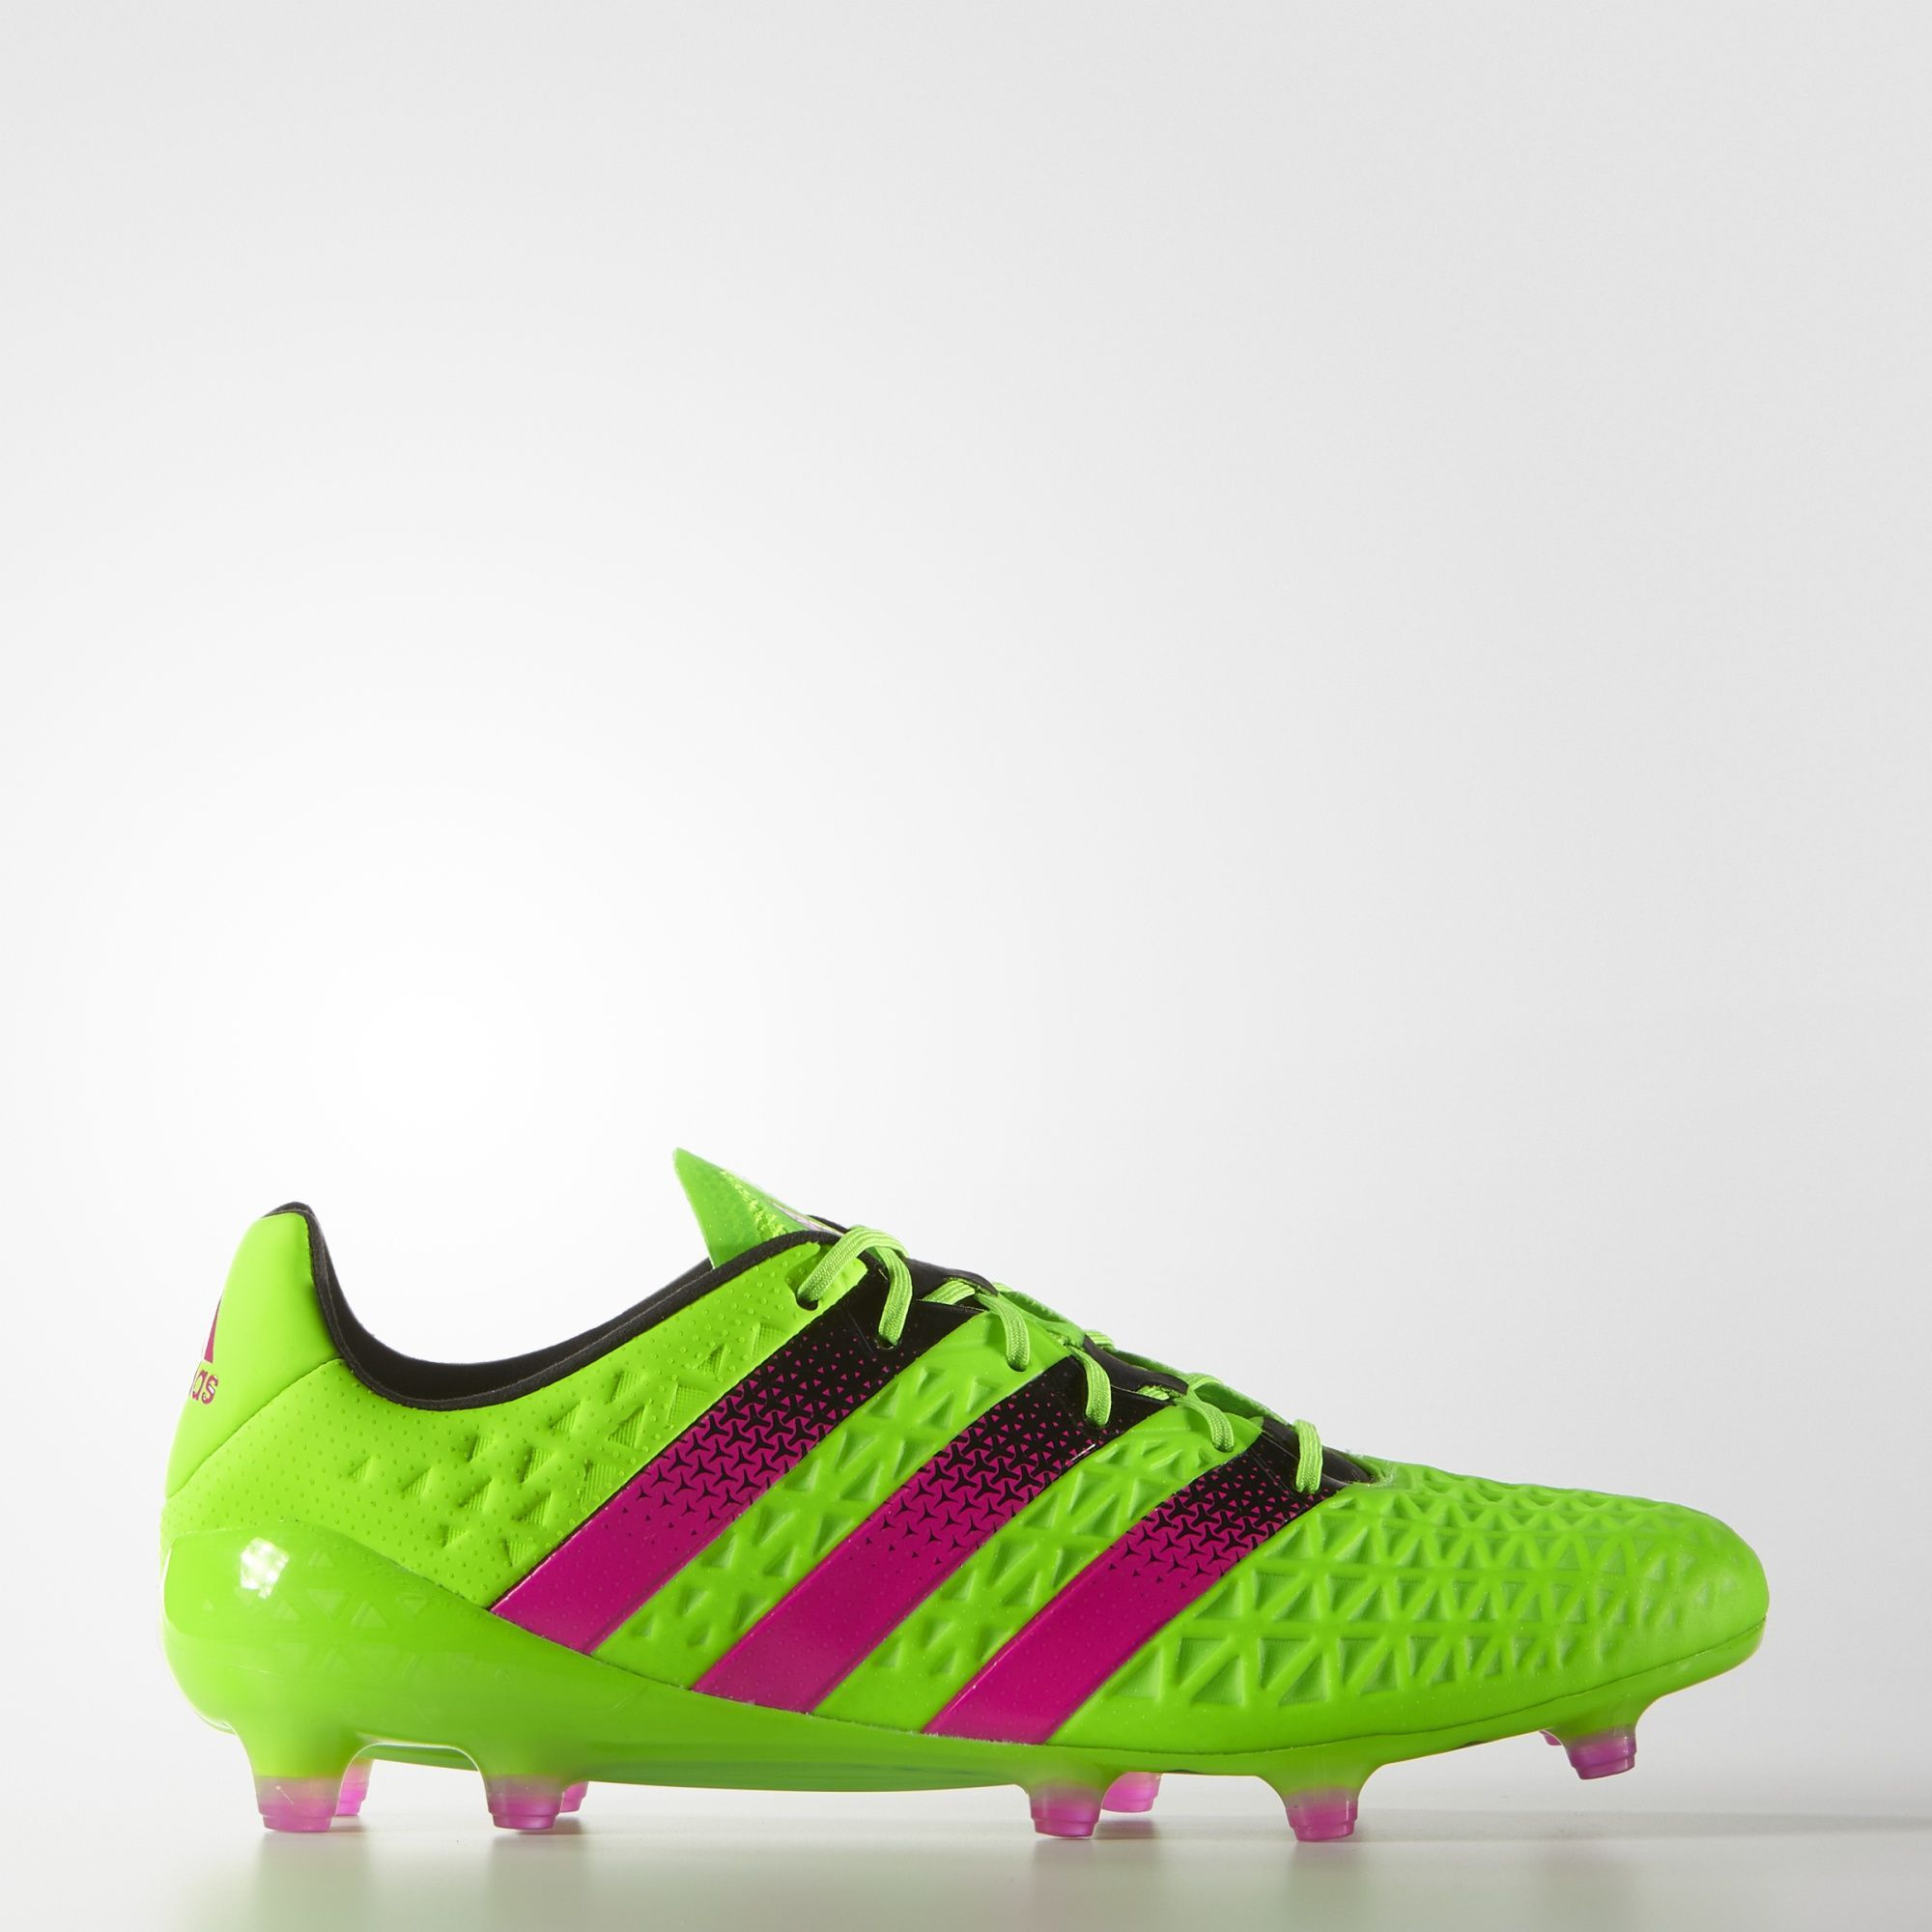 new adidas soccer shoes for kids adidas shoes men superstar yellow